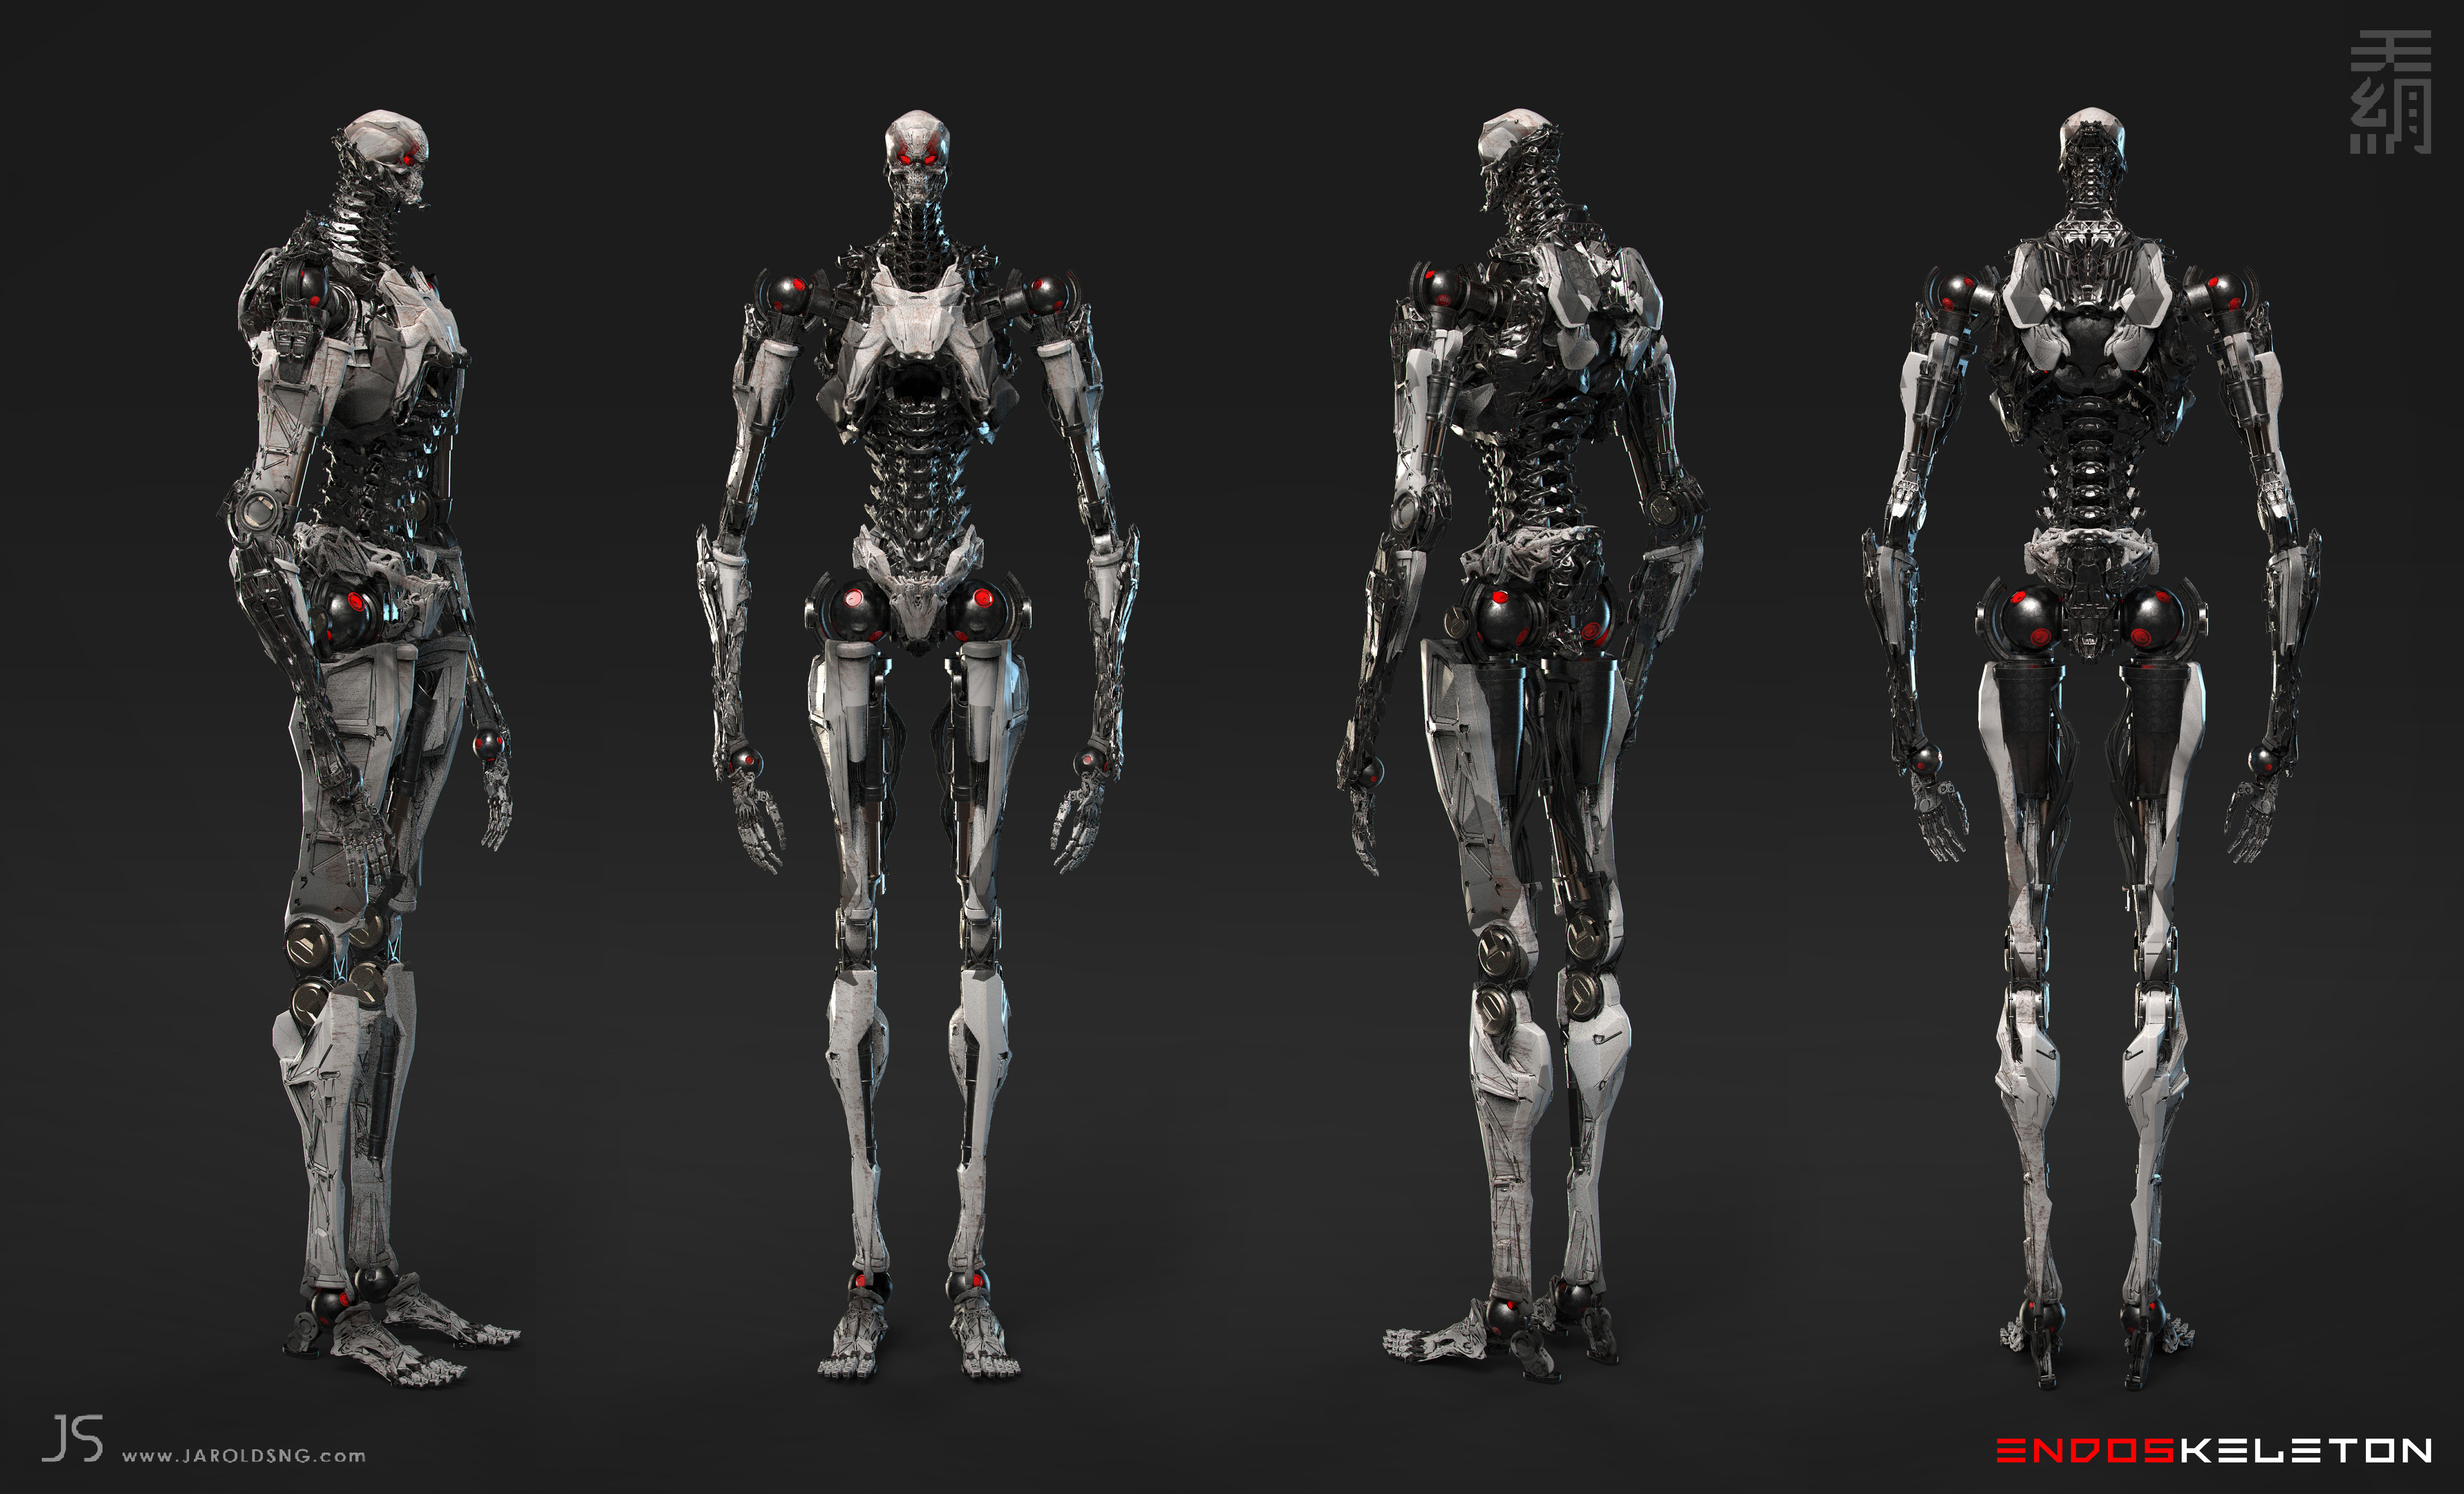 Full Turnaround- All shading was done in Keyshot. No UVs; poly cleanup